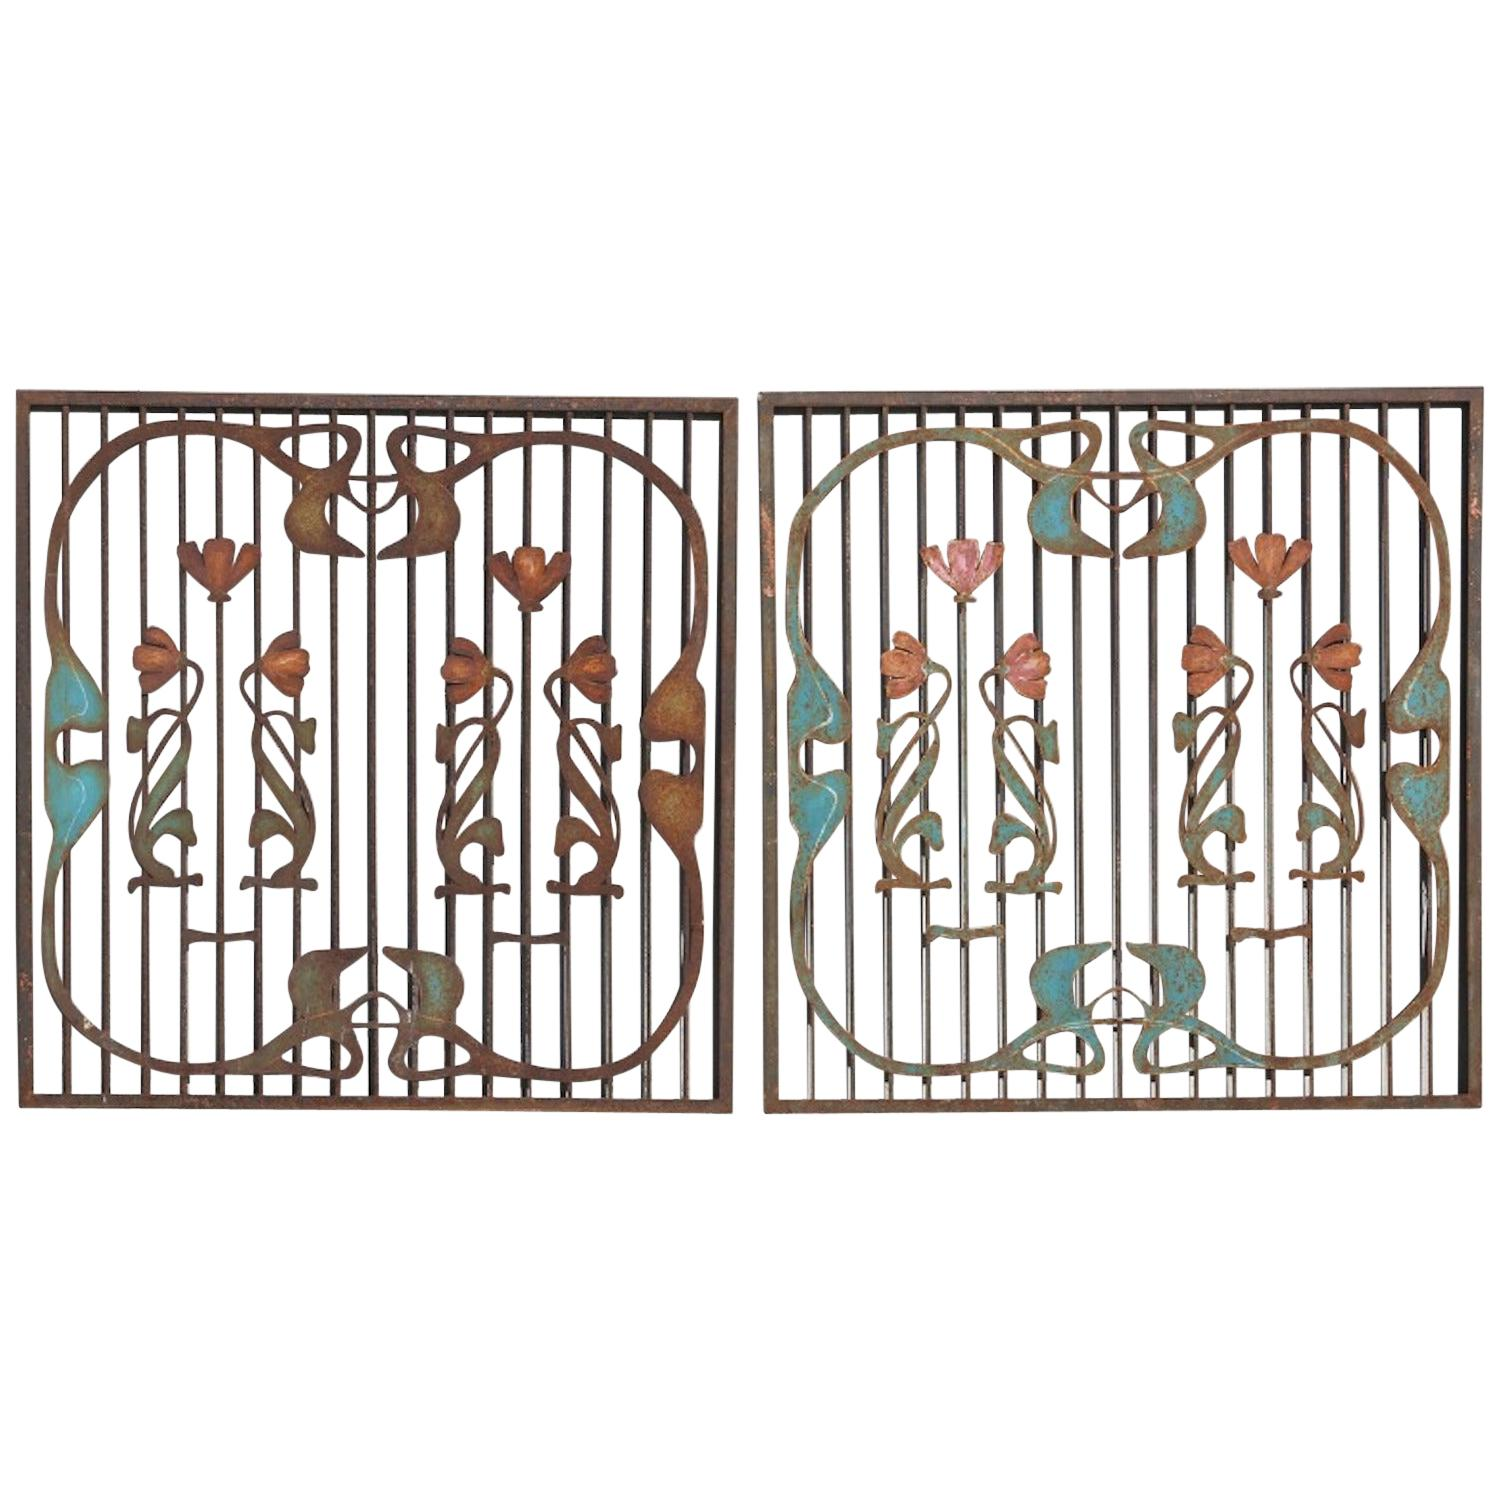 Pair of French Art Nouveau Wrought Iron Garden Gates, Early 20th Century